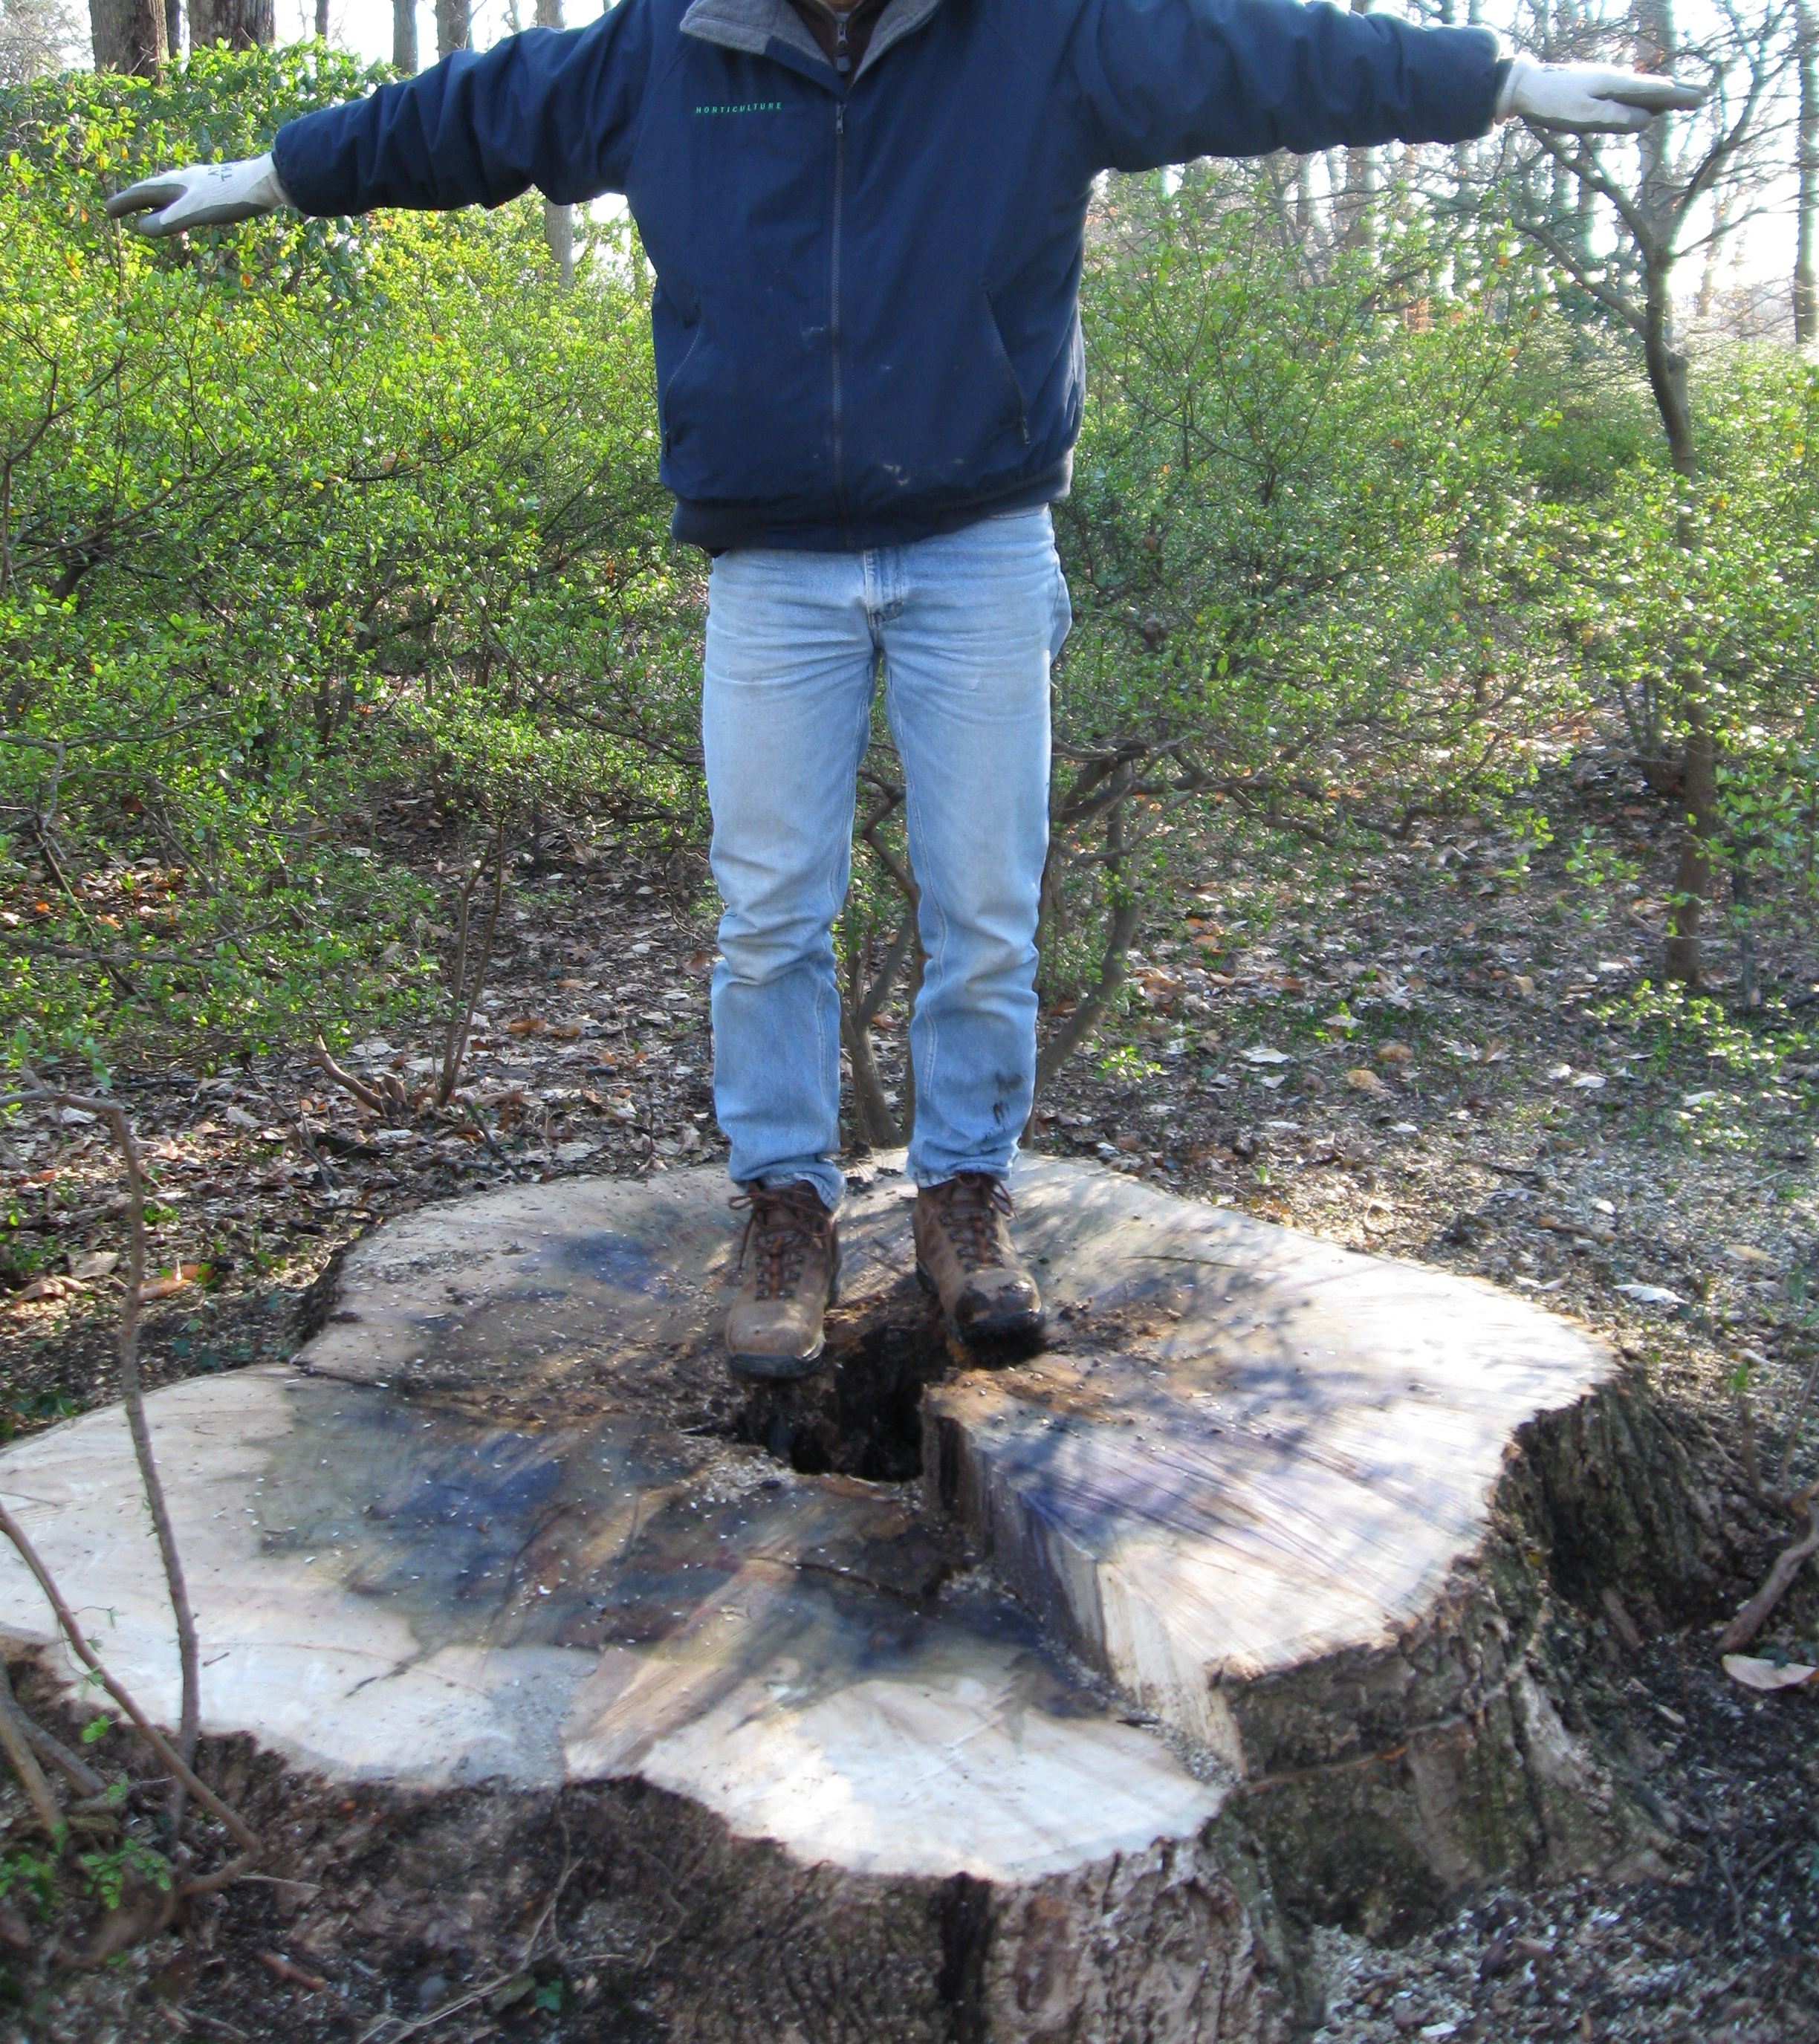 Stump of tulip poplar